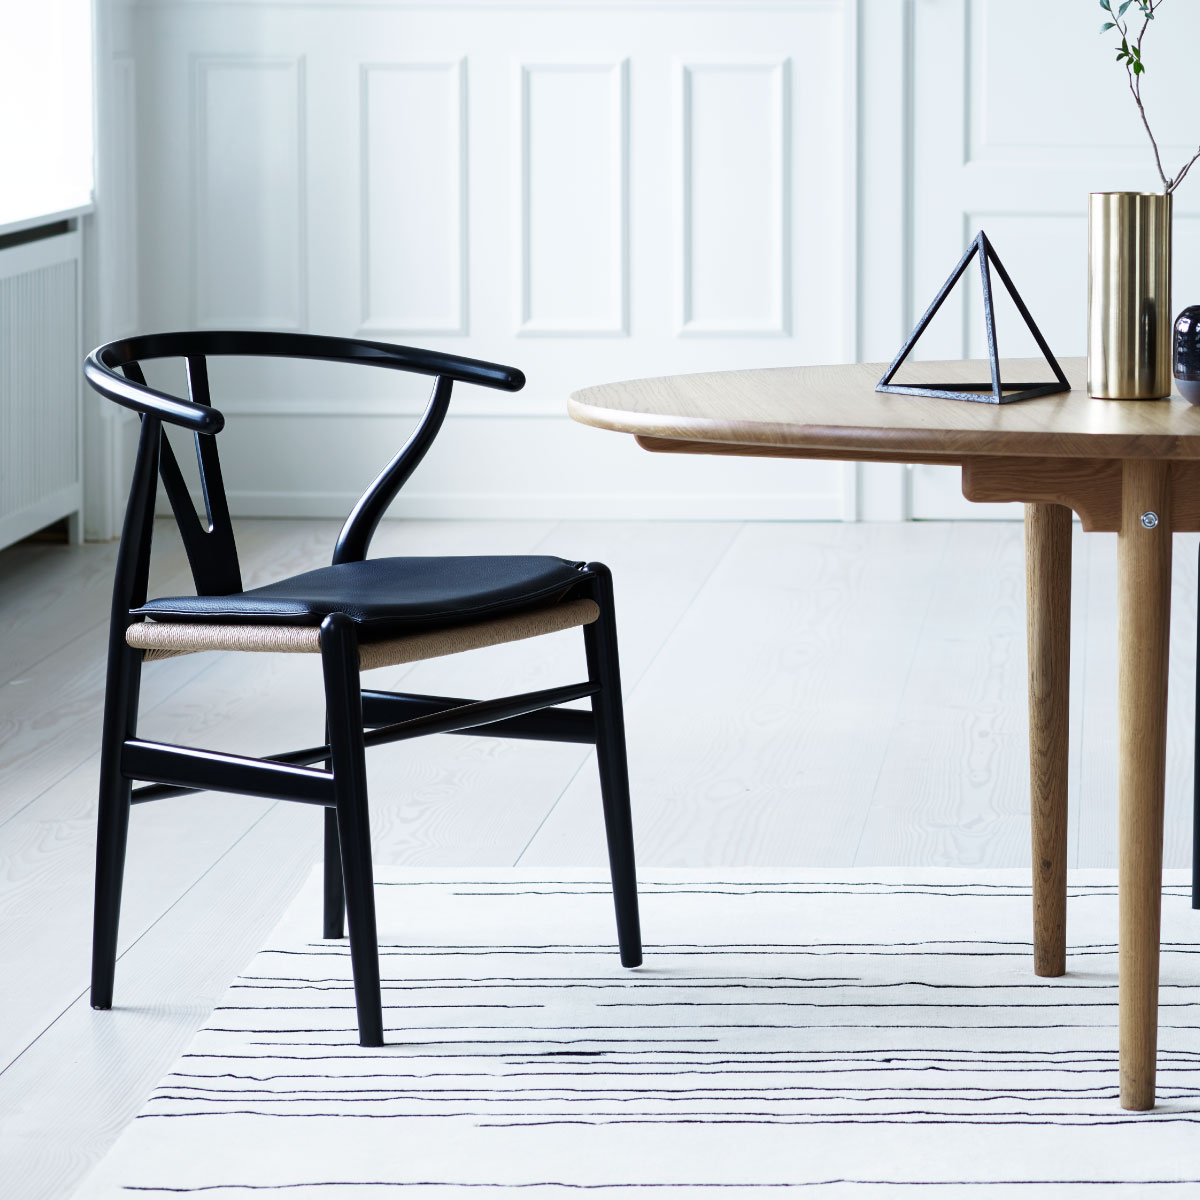 ... CH24 Wishbone Chair, Black Oak, Black Paper Cord Seat ...